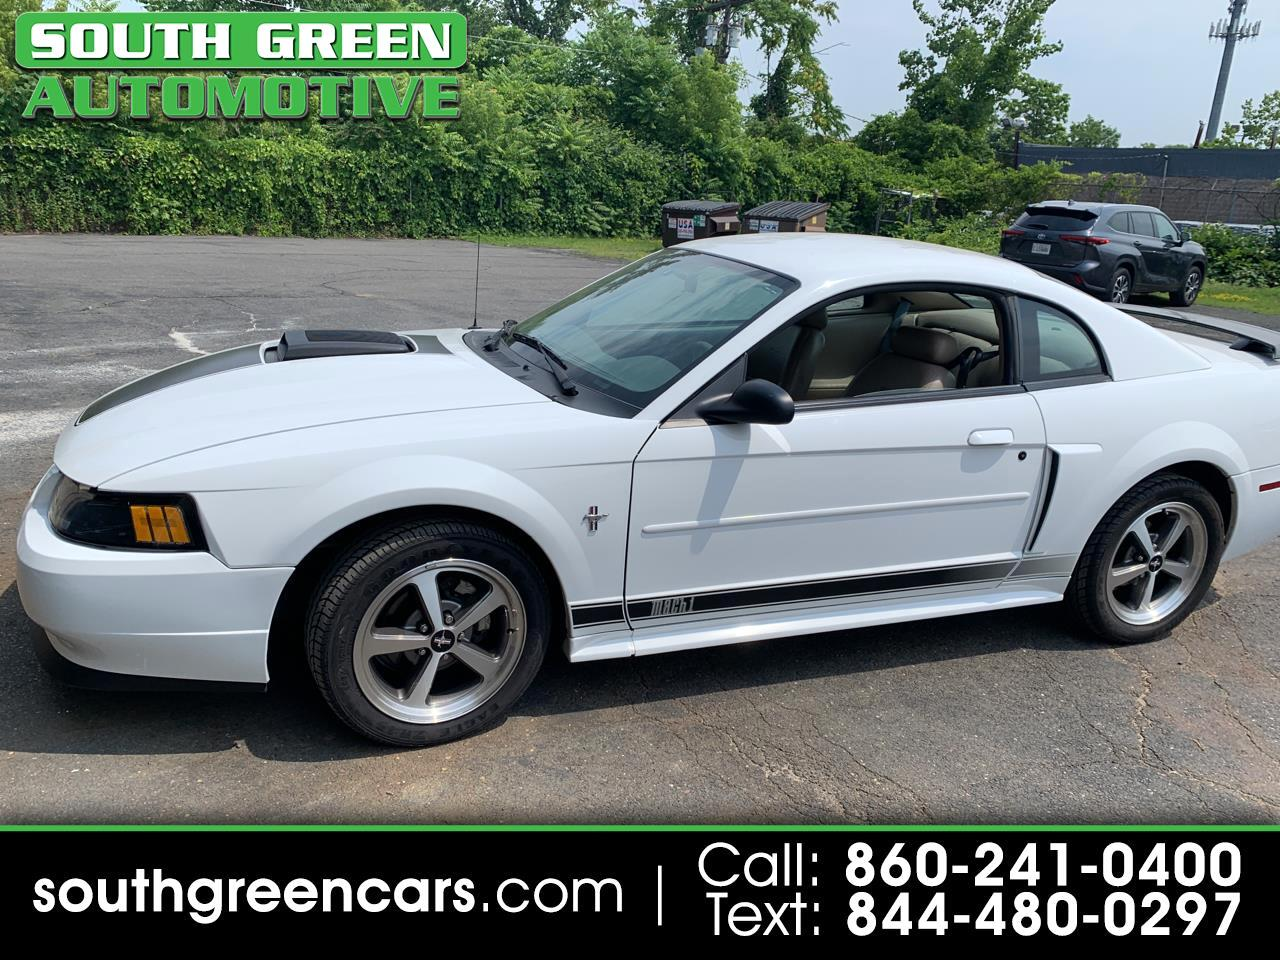 Ford Mustang Deluxe Coupe 2003